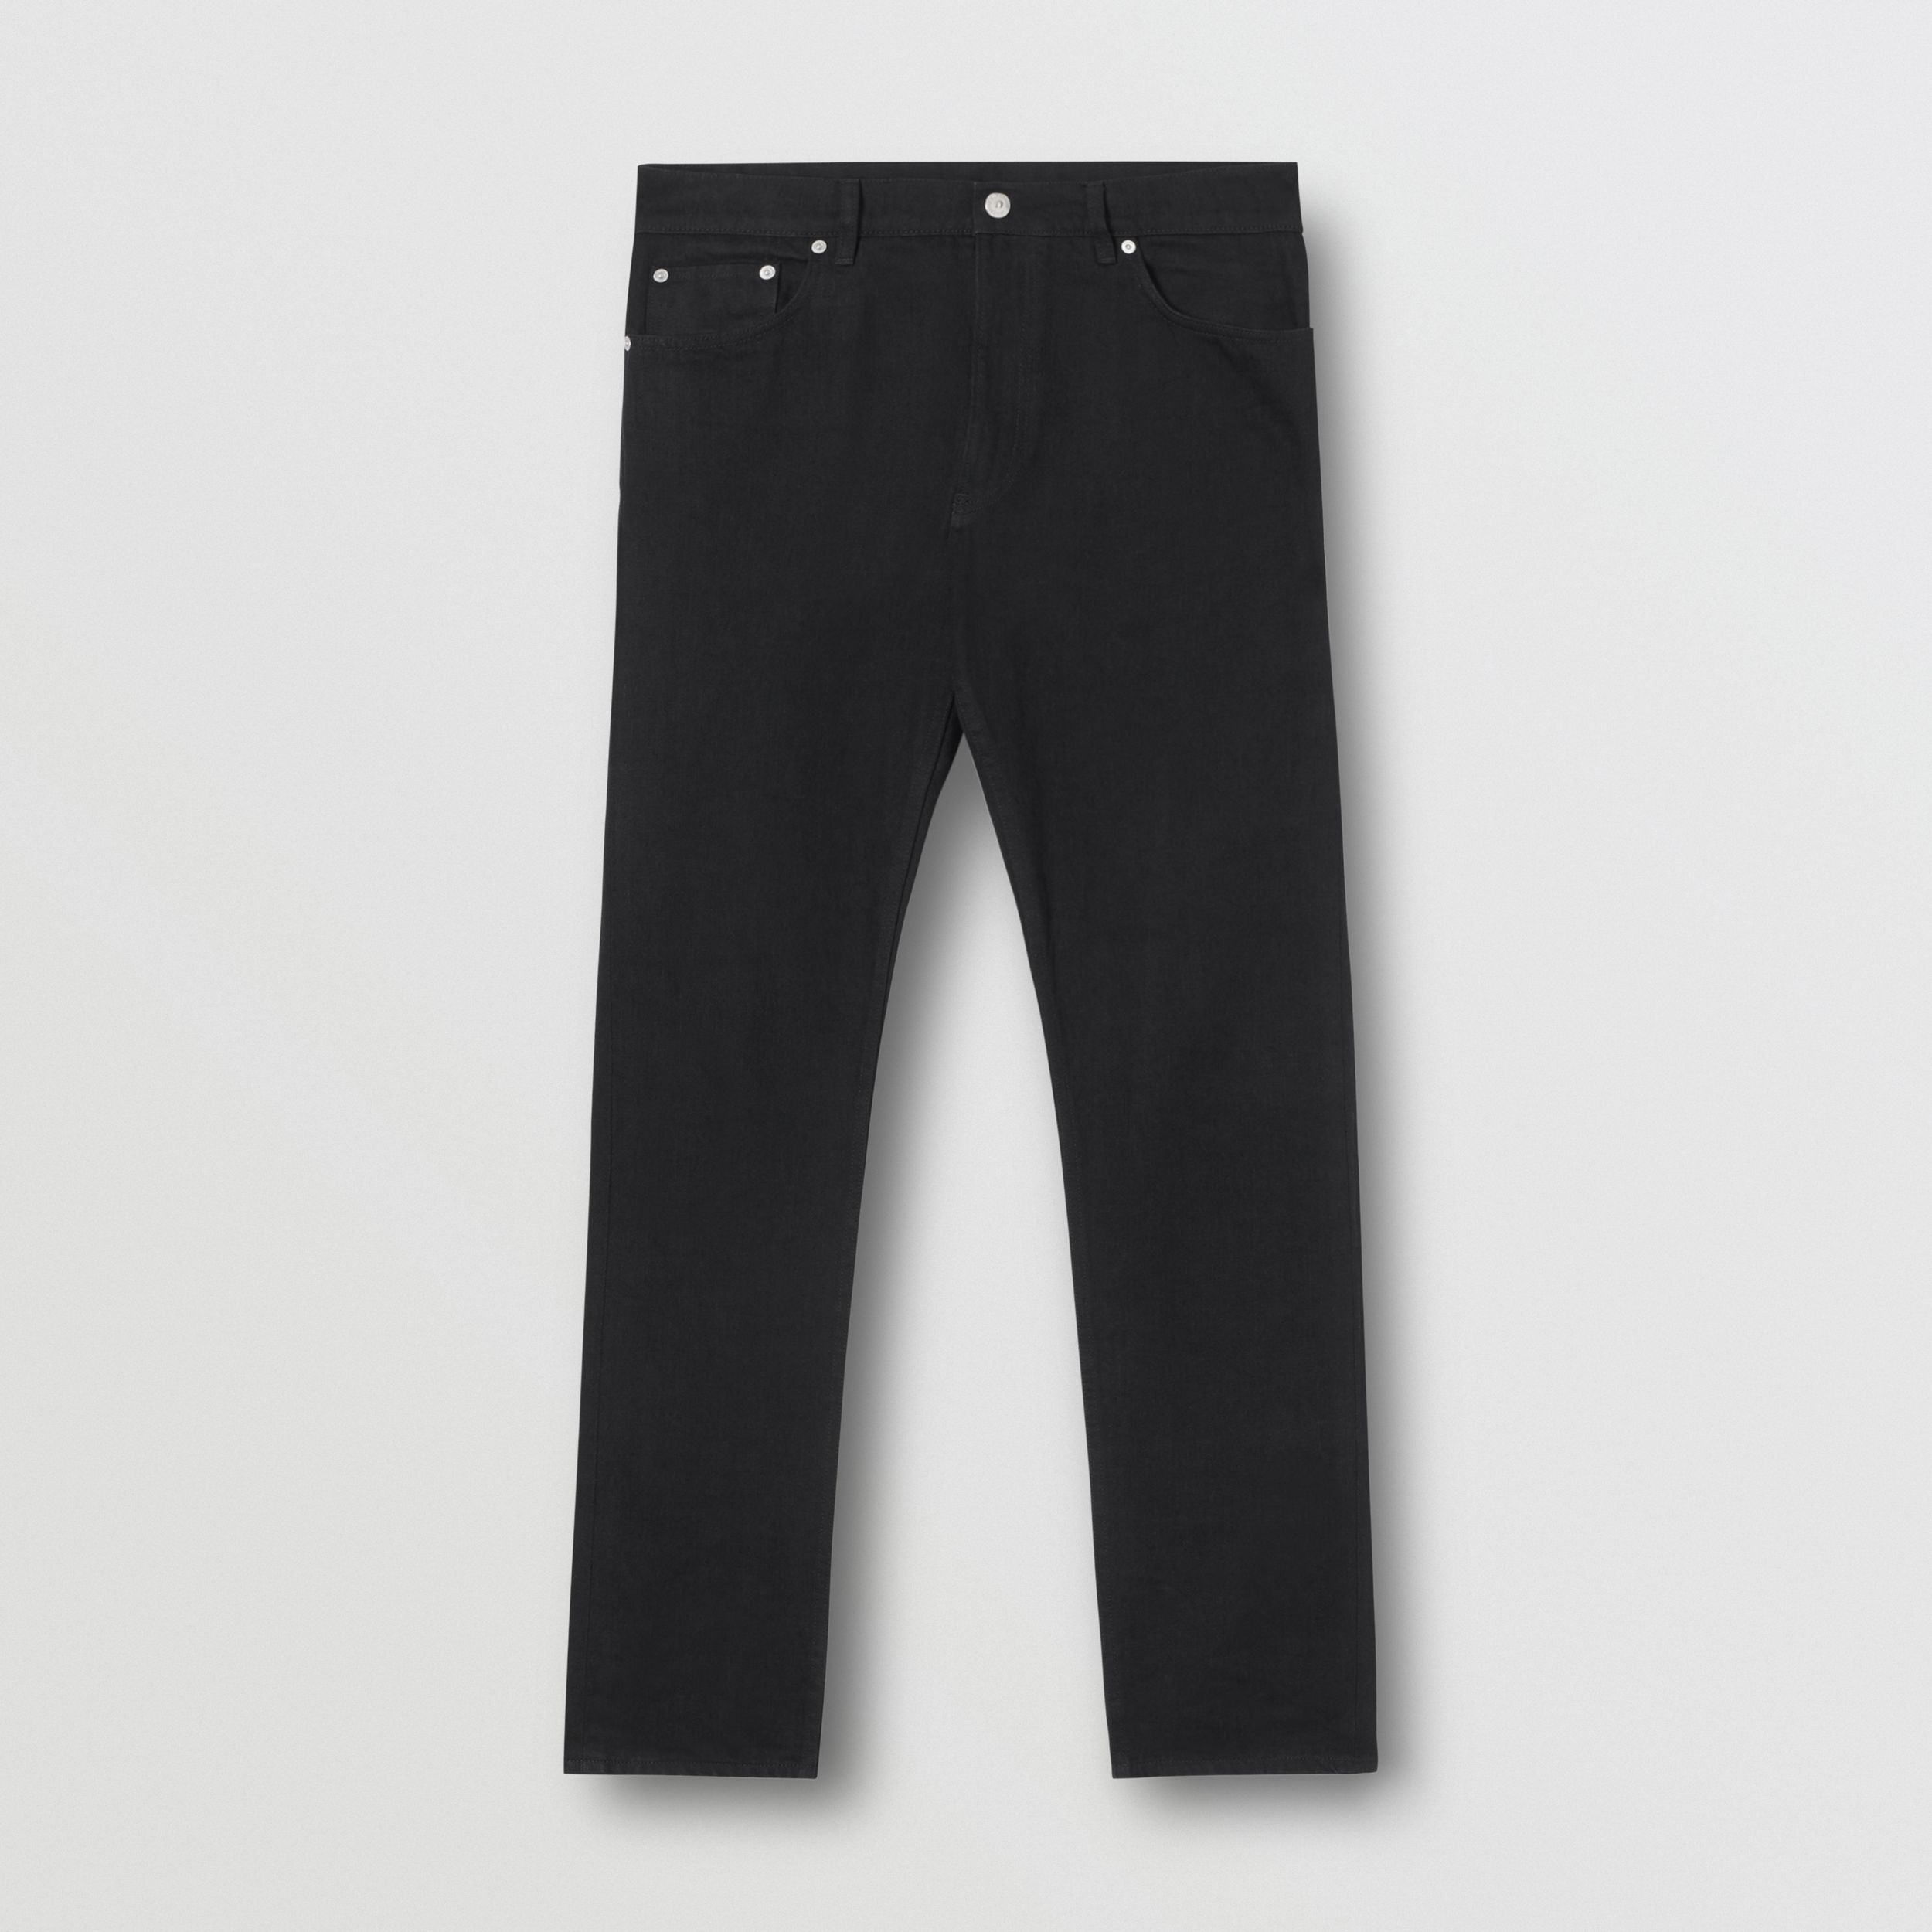 Slim Fit Japanese Denim Jeans in Black - Men | Burberry - 4